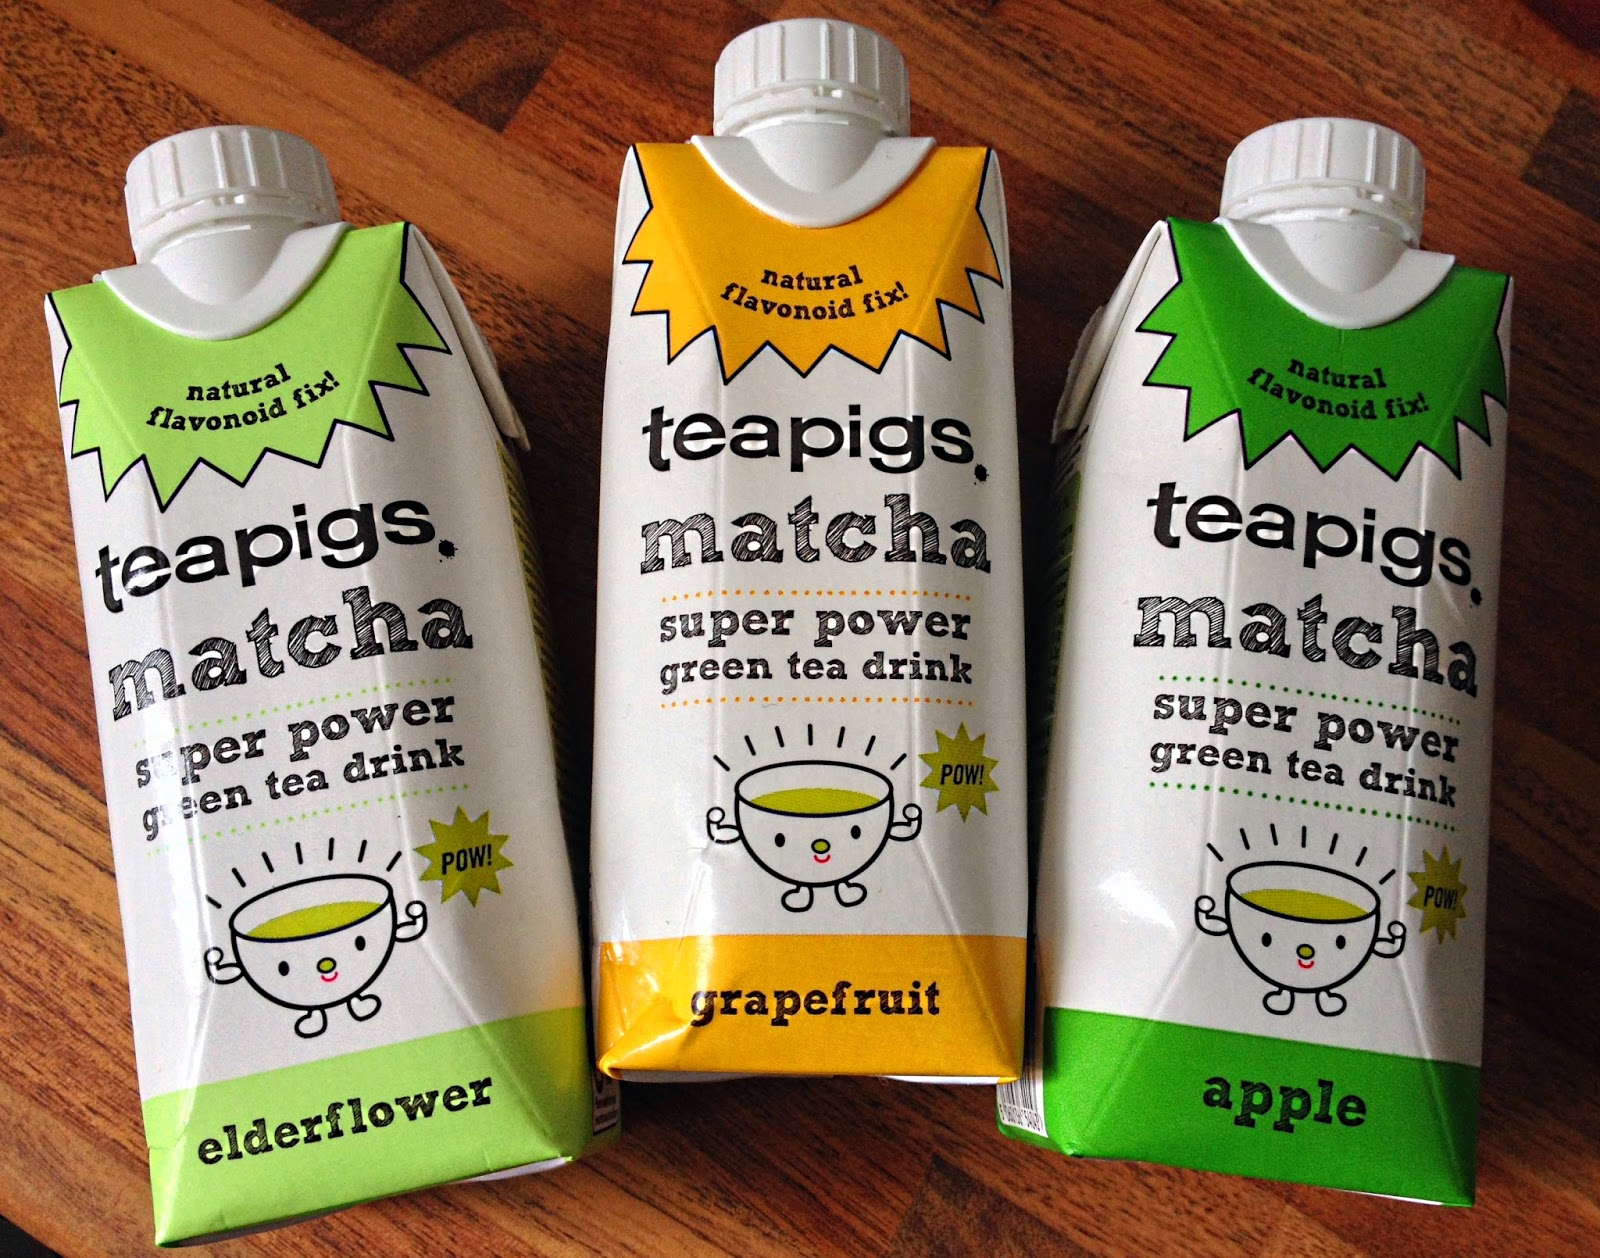 ThatRedheadSaid : teapigs matcha super power green tea drink